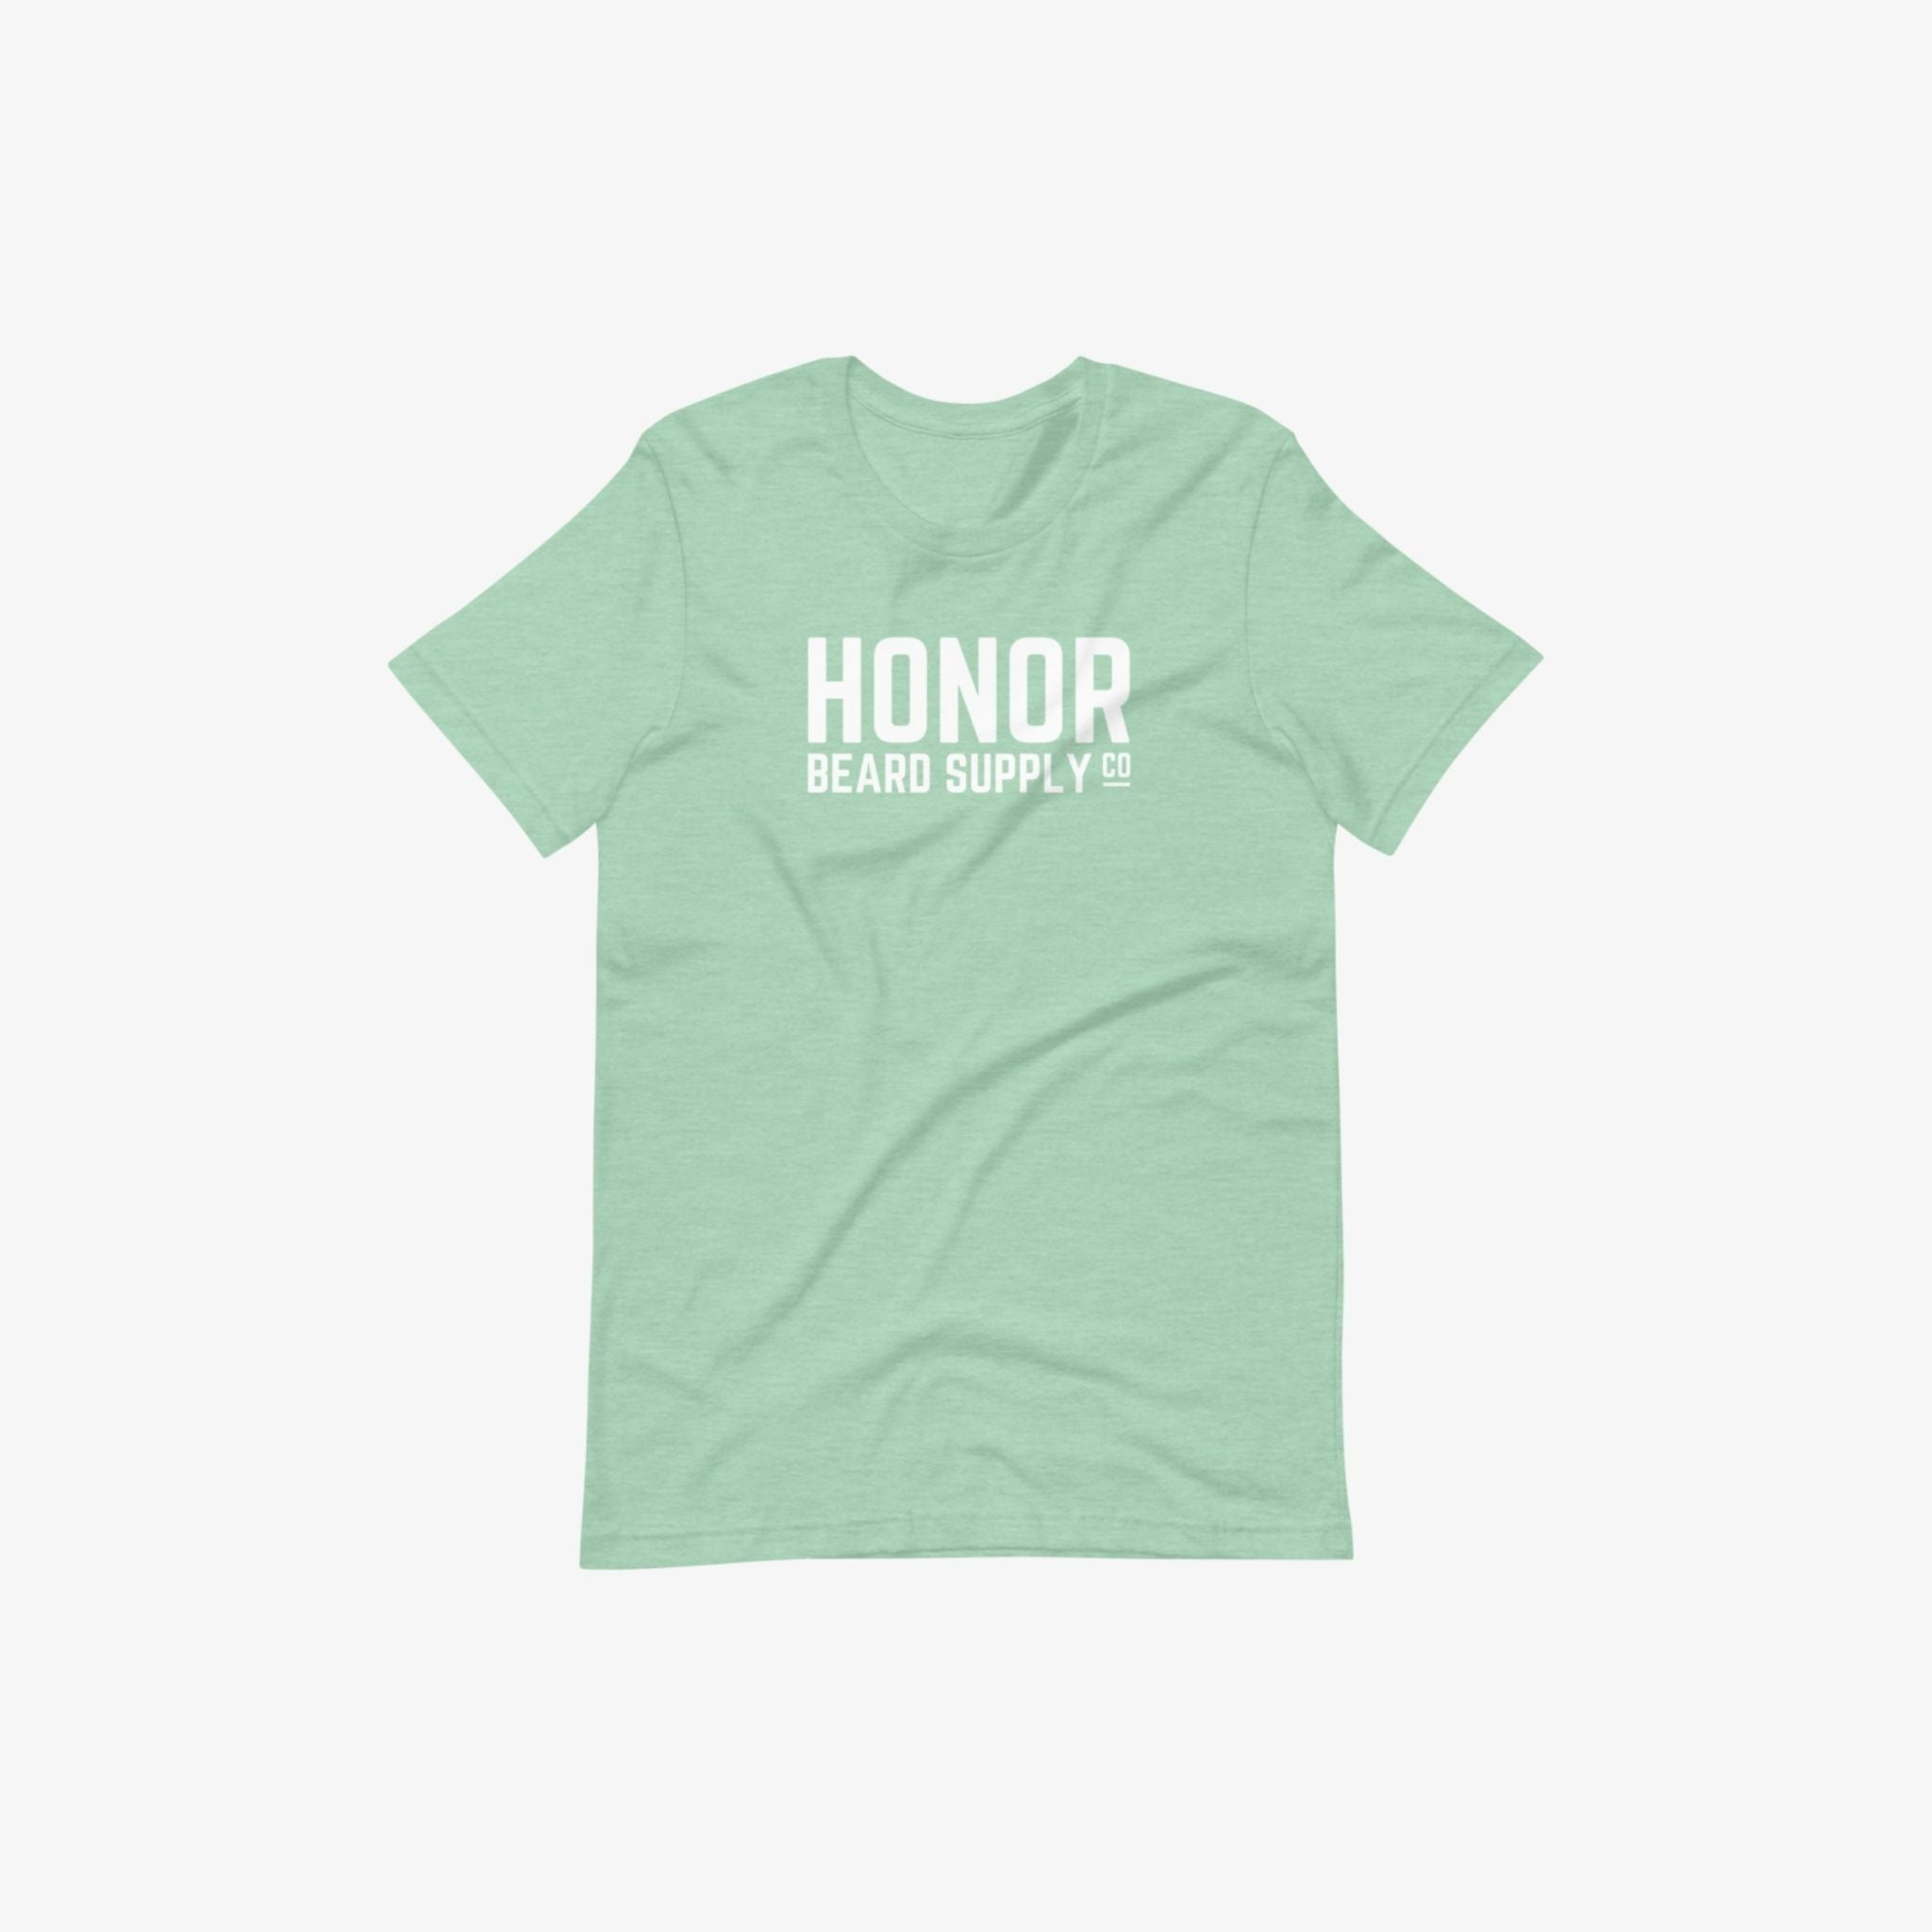 Honor's supply company tee in mint and on a white background